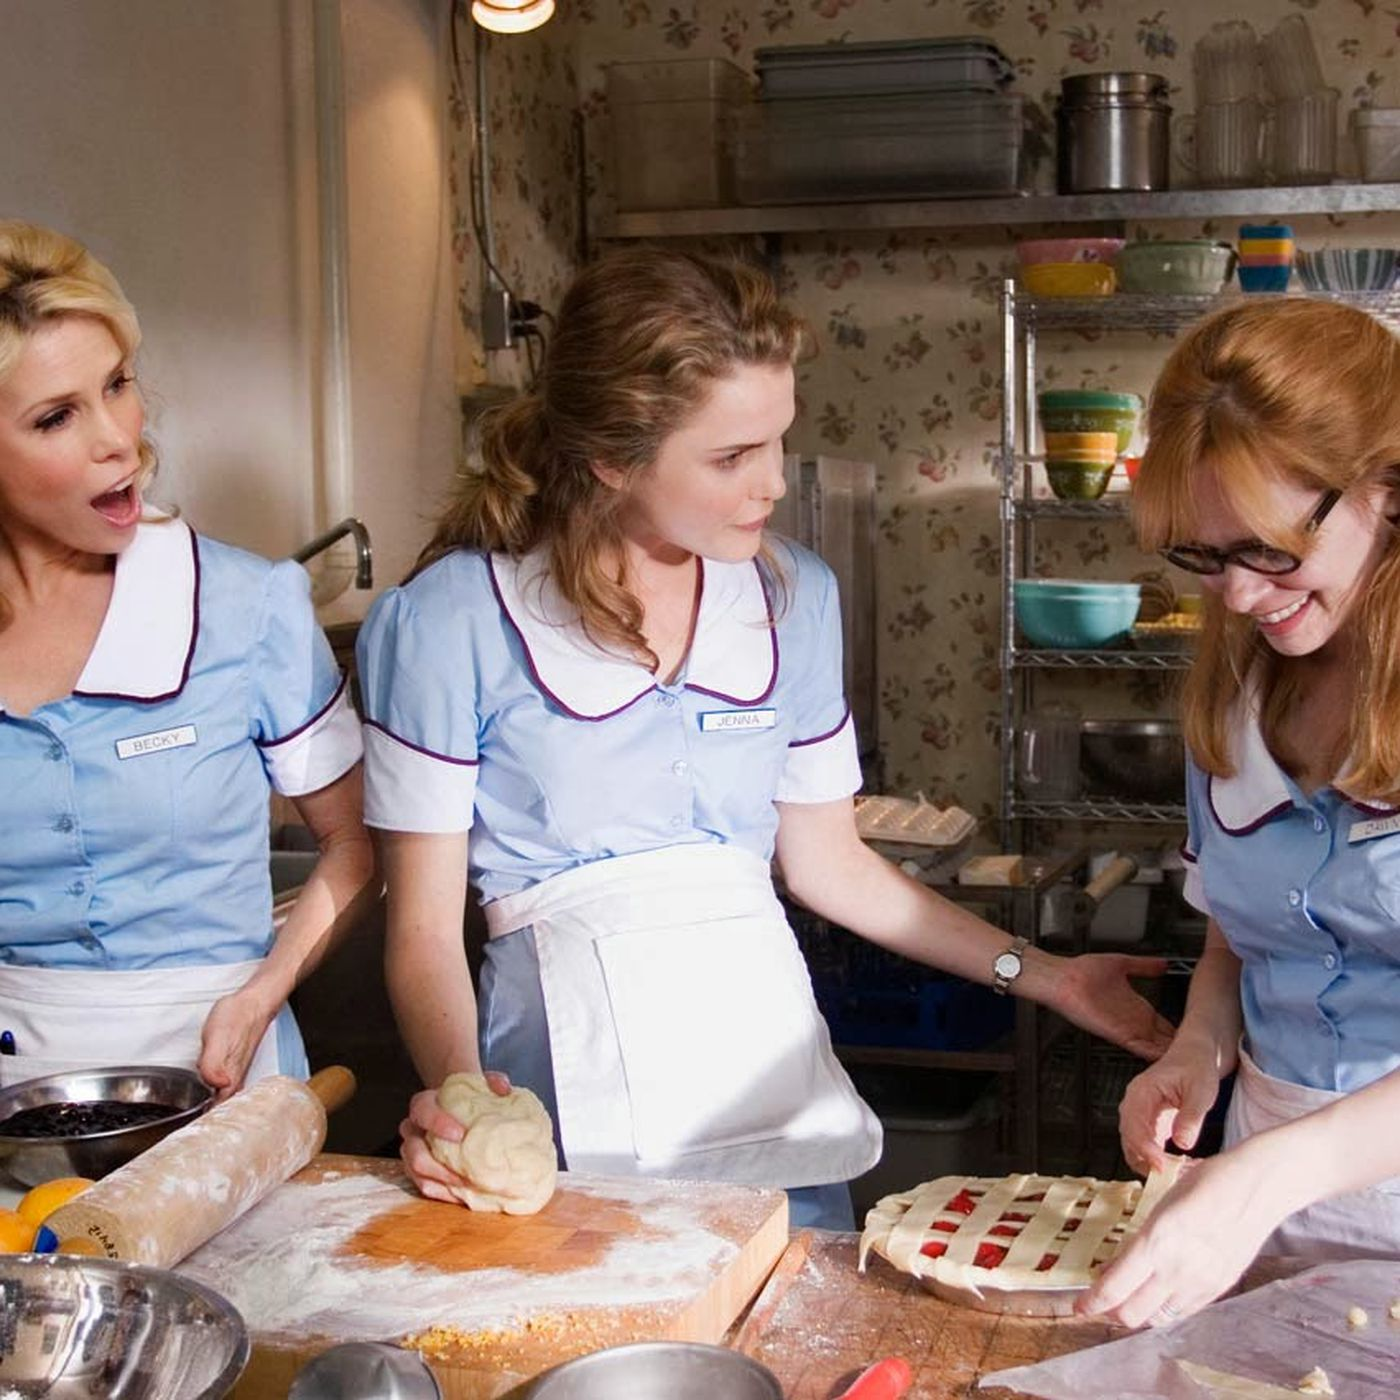 How Diner Waitress Uniforms Have Evolved From Scandalous Bloomers to